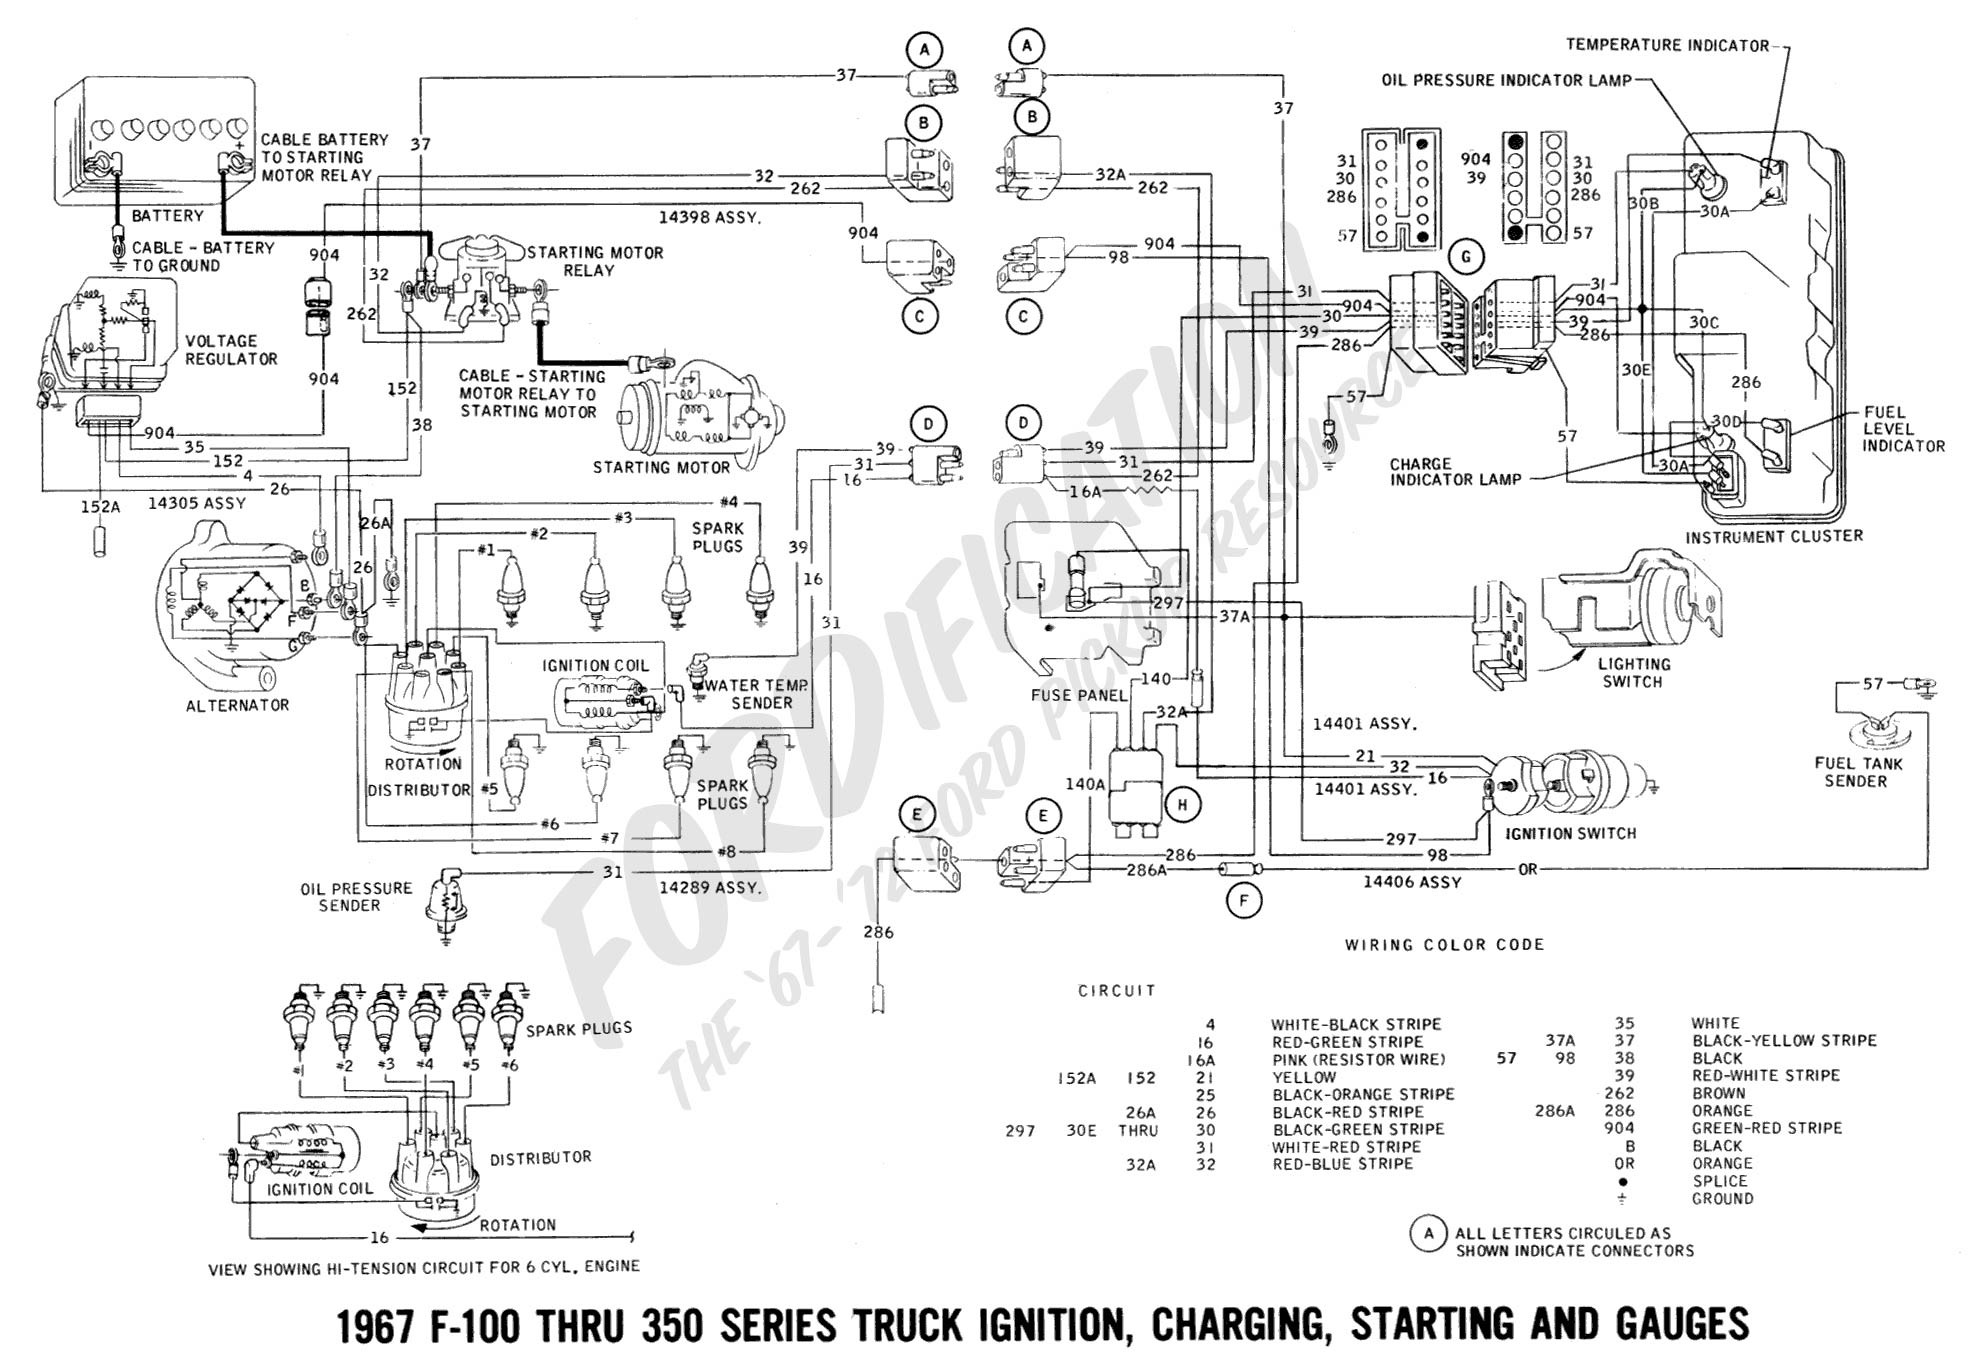 Ford Truck Wiring Diagrams ford Truck Technical Drawings and Schematics Section H Wiring Of Ford Truck Wiring Diagrams